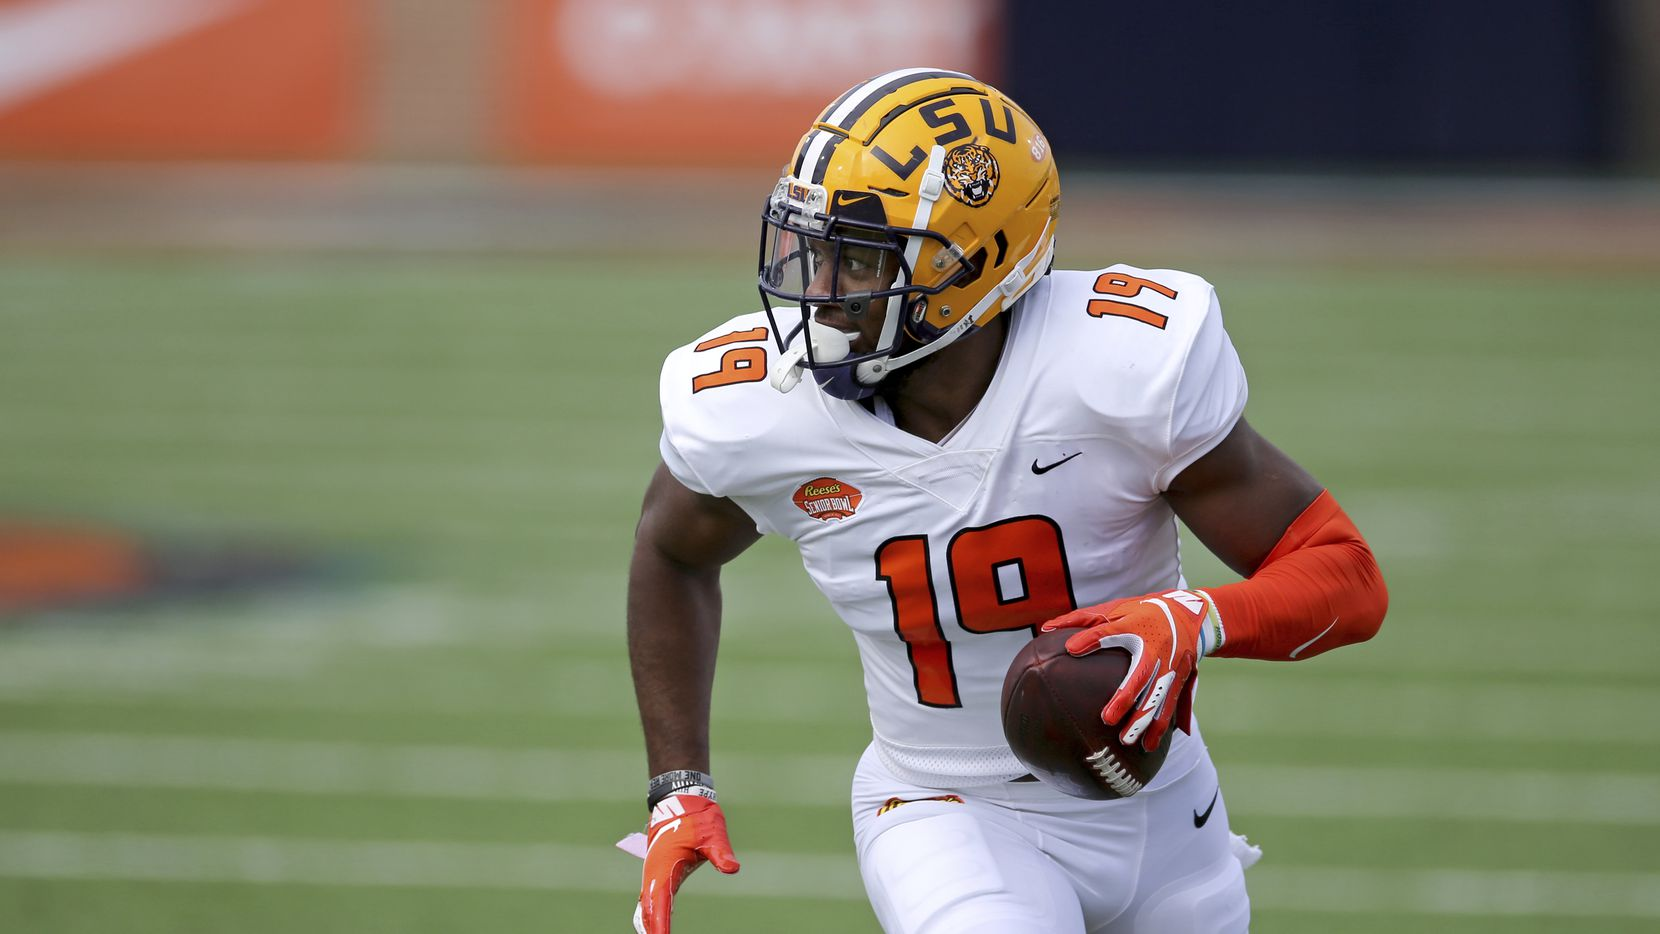 American Team linebacker Jabril Cox of LSU (19) is pictured during the first half of the Senior Bowl game in Mobile, Ala., on Saturday, Jan. 30, 2021.